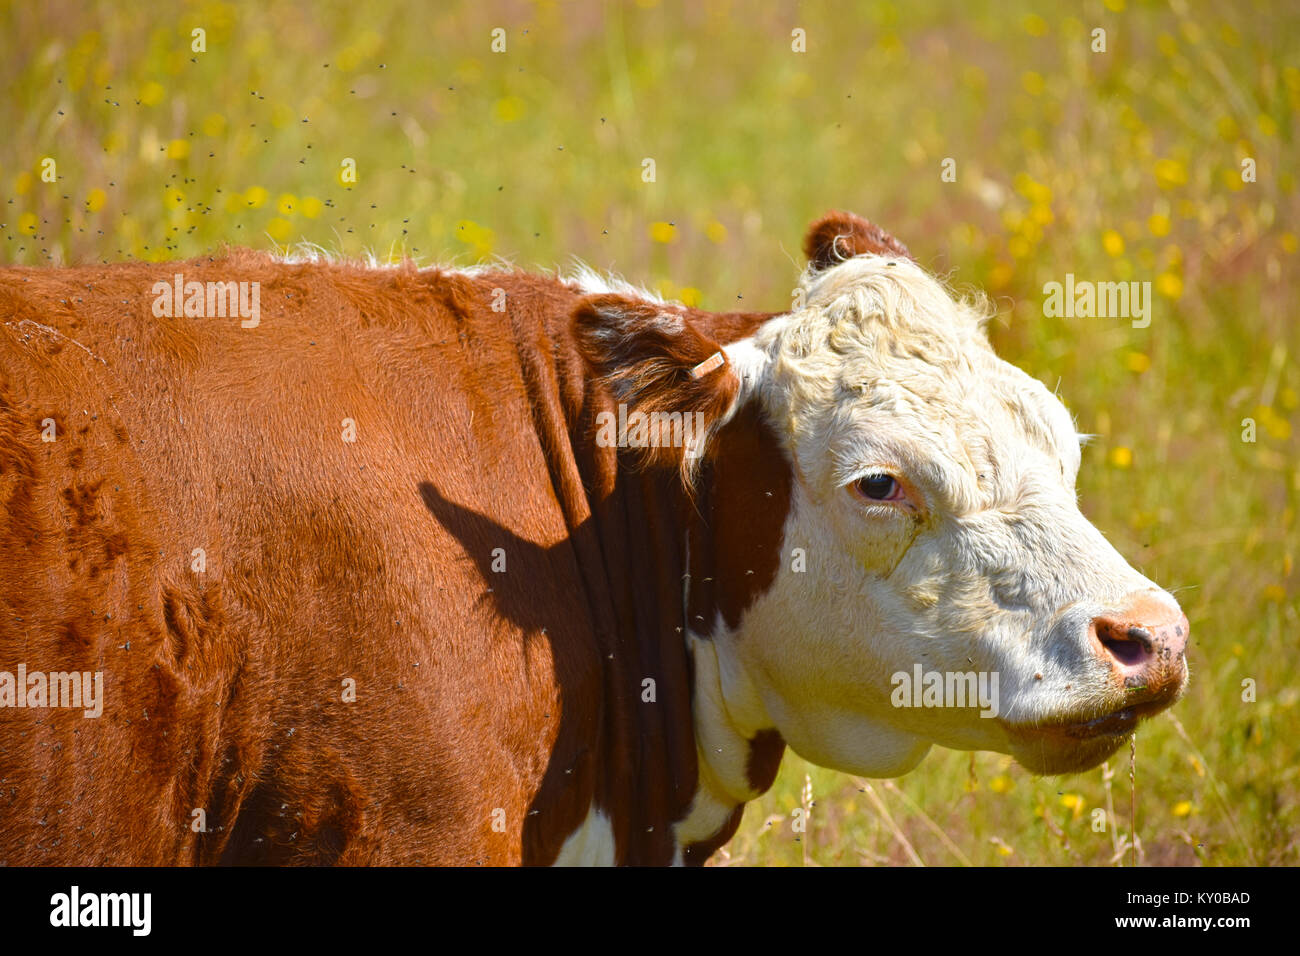 Miserable cow with thousands of flies irritating her - she stands in a blurred field of dandelions. - Stock Image